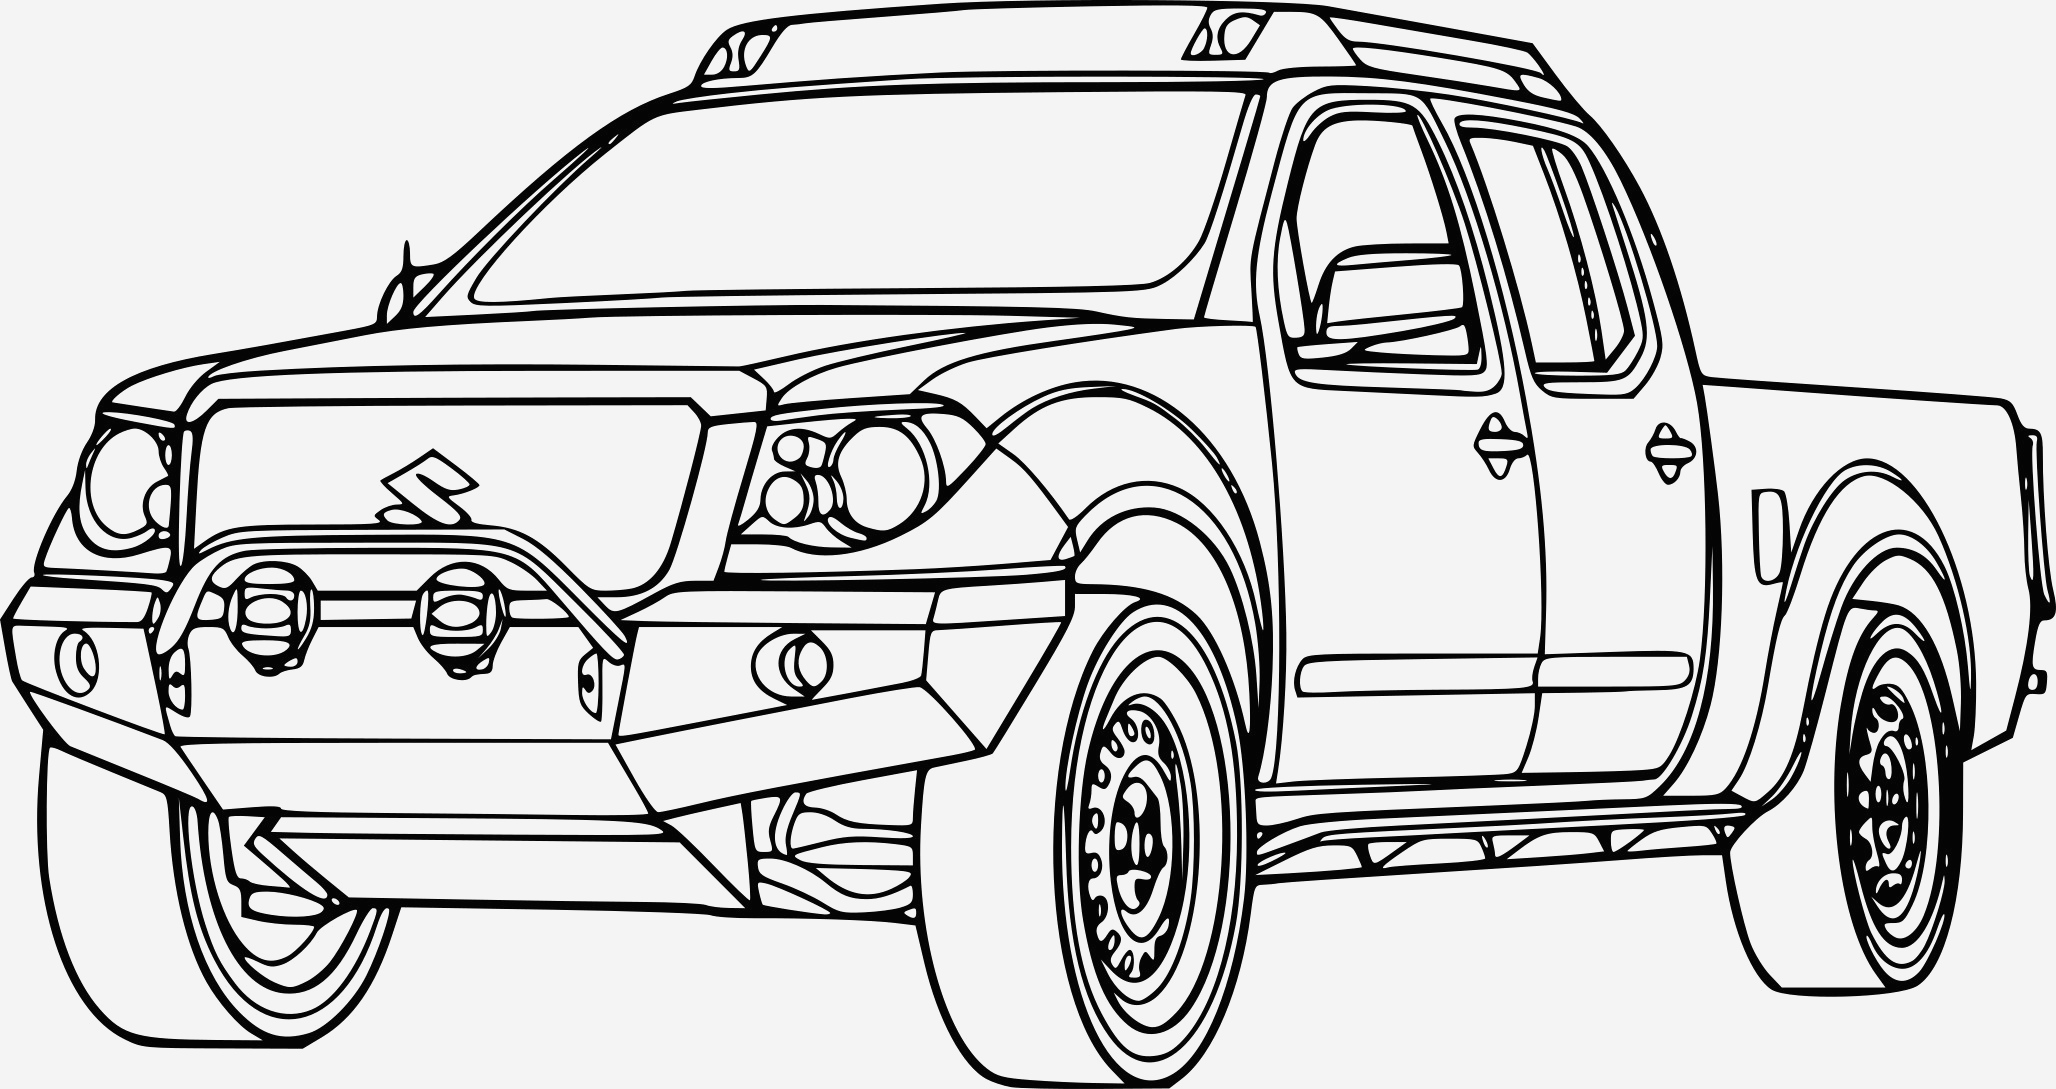 Coloriage Voiture De Police New Evo Magz V4 7 Of Coloriage Voiture De Police